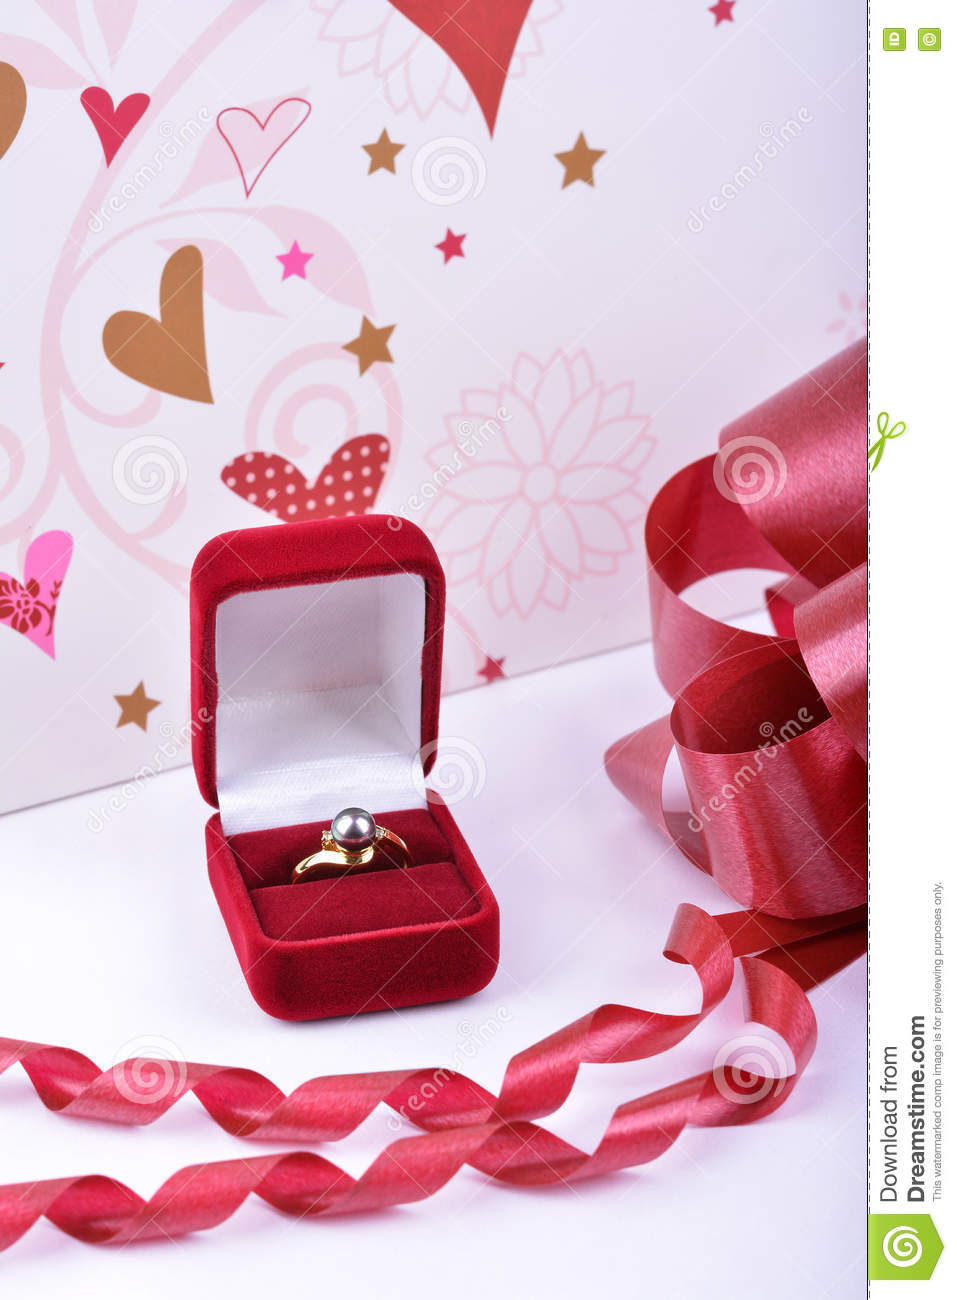 Wedding Ring In A Red Gift Box Stock Image - Image of beautiful ...